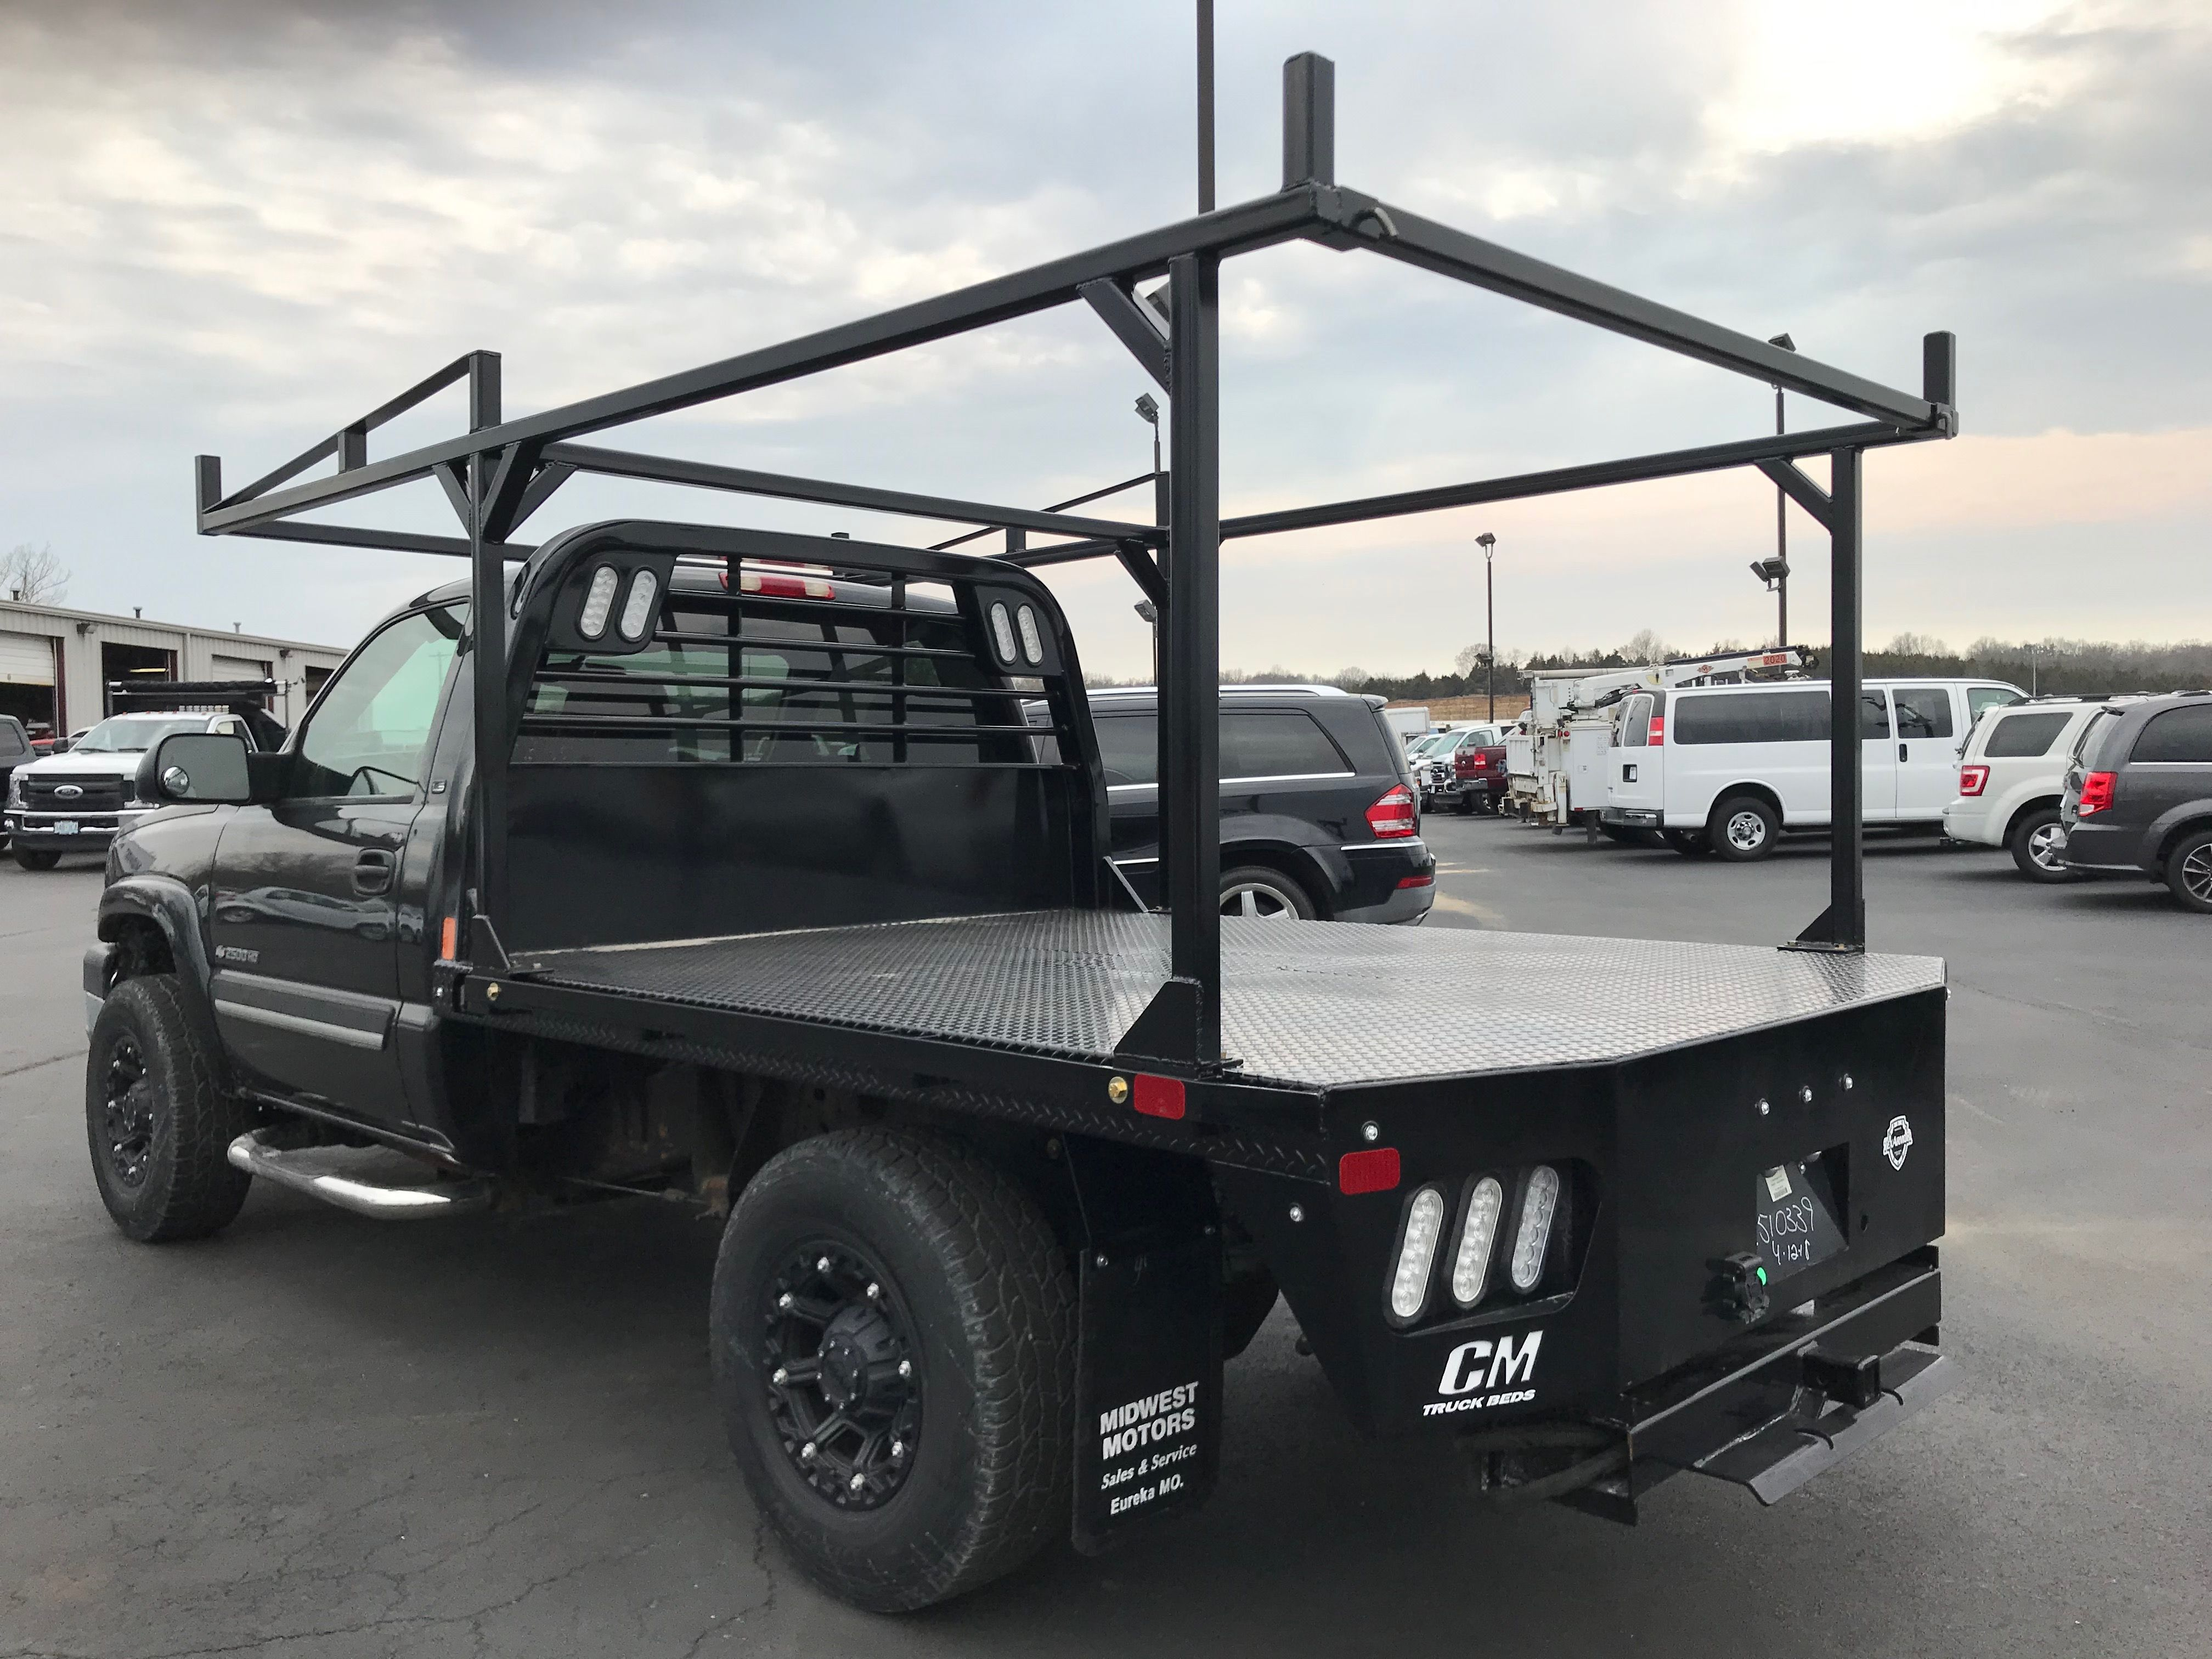 Pin By Julio On Truck Beds Flatbeds Service Bodies Dumpbeds Utility Truck Beds Truck Bed Trucks